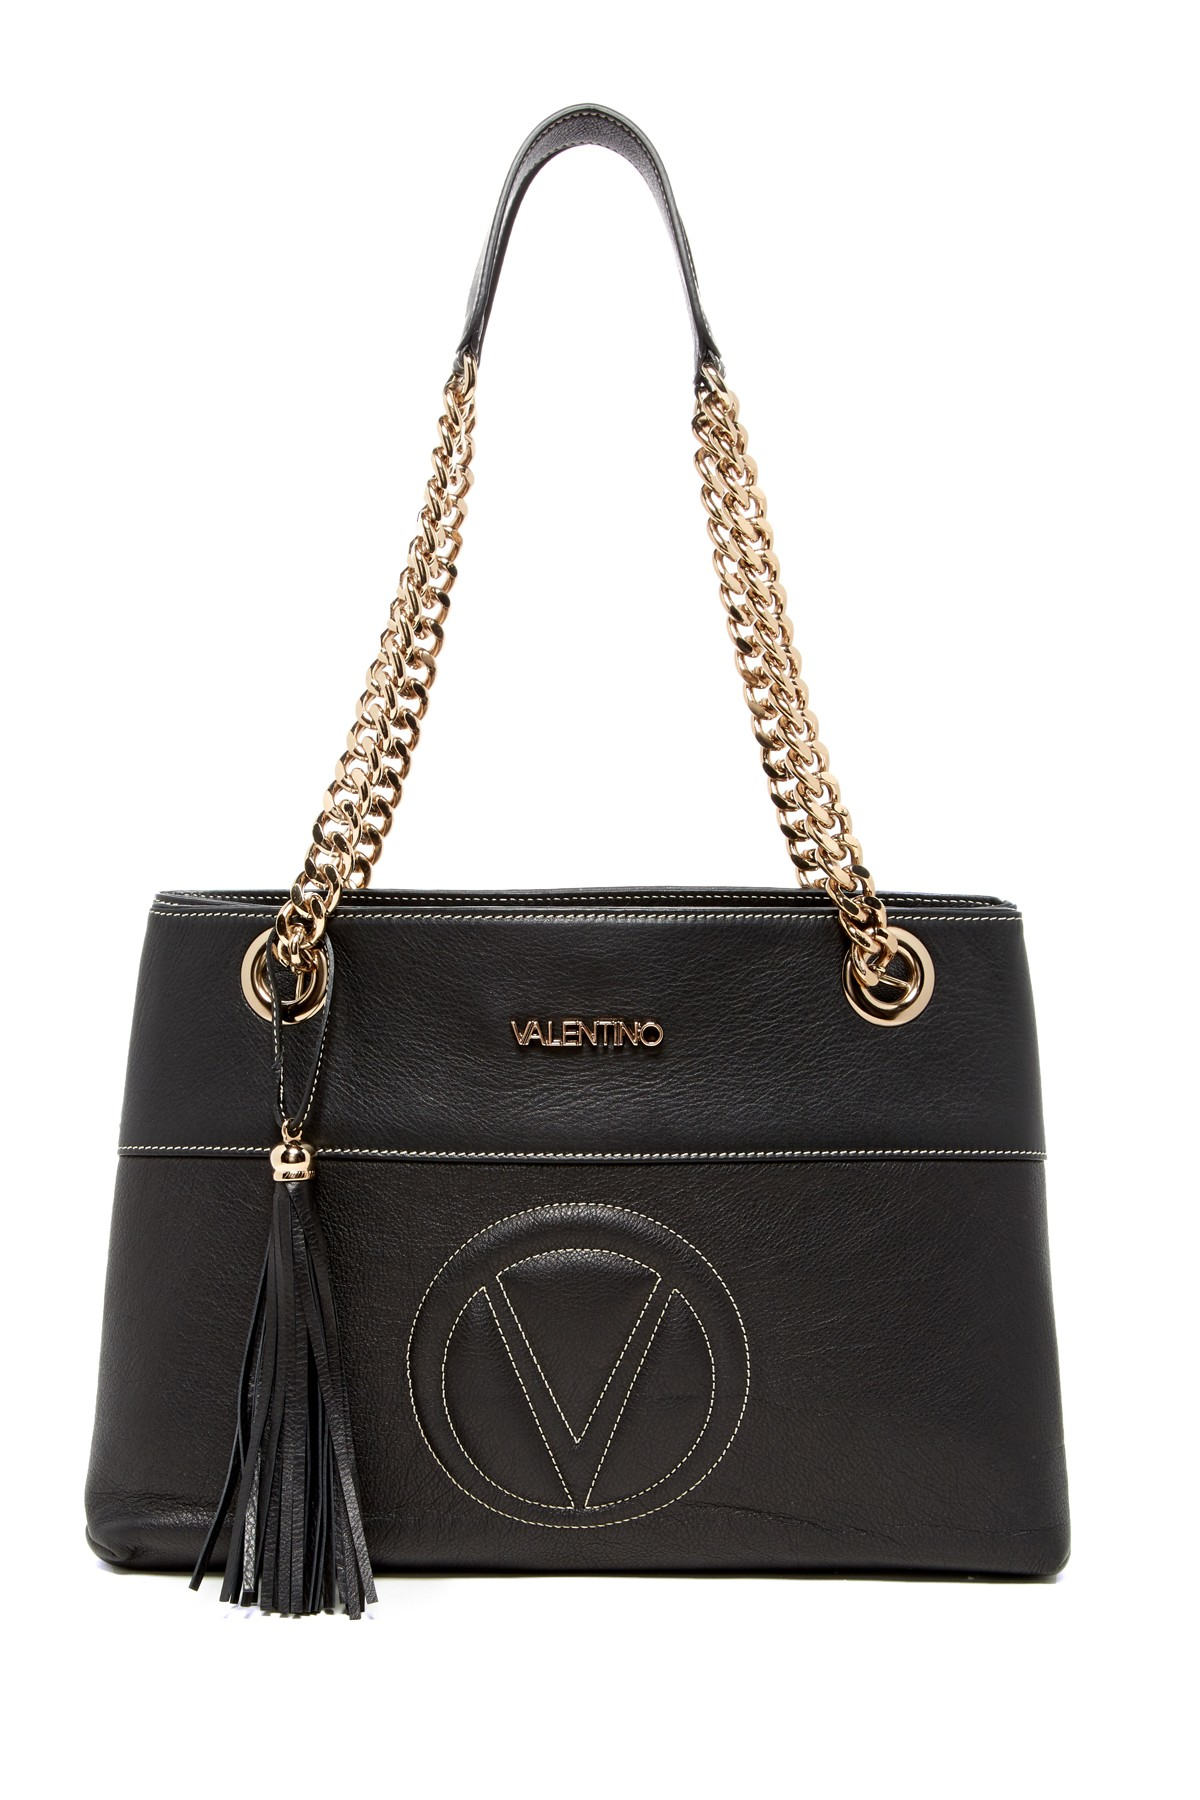 8d55ca2ab18 Valentino by mario valentino Verra Leather Sauvage Shoulder Bag in Black |  Lyst